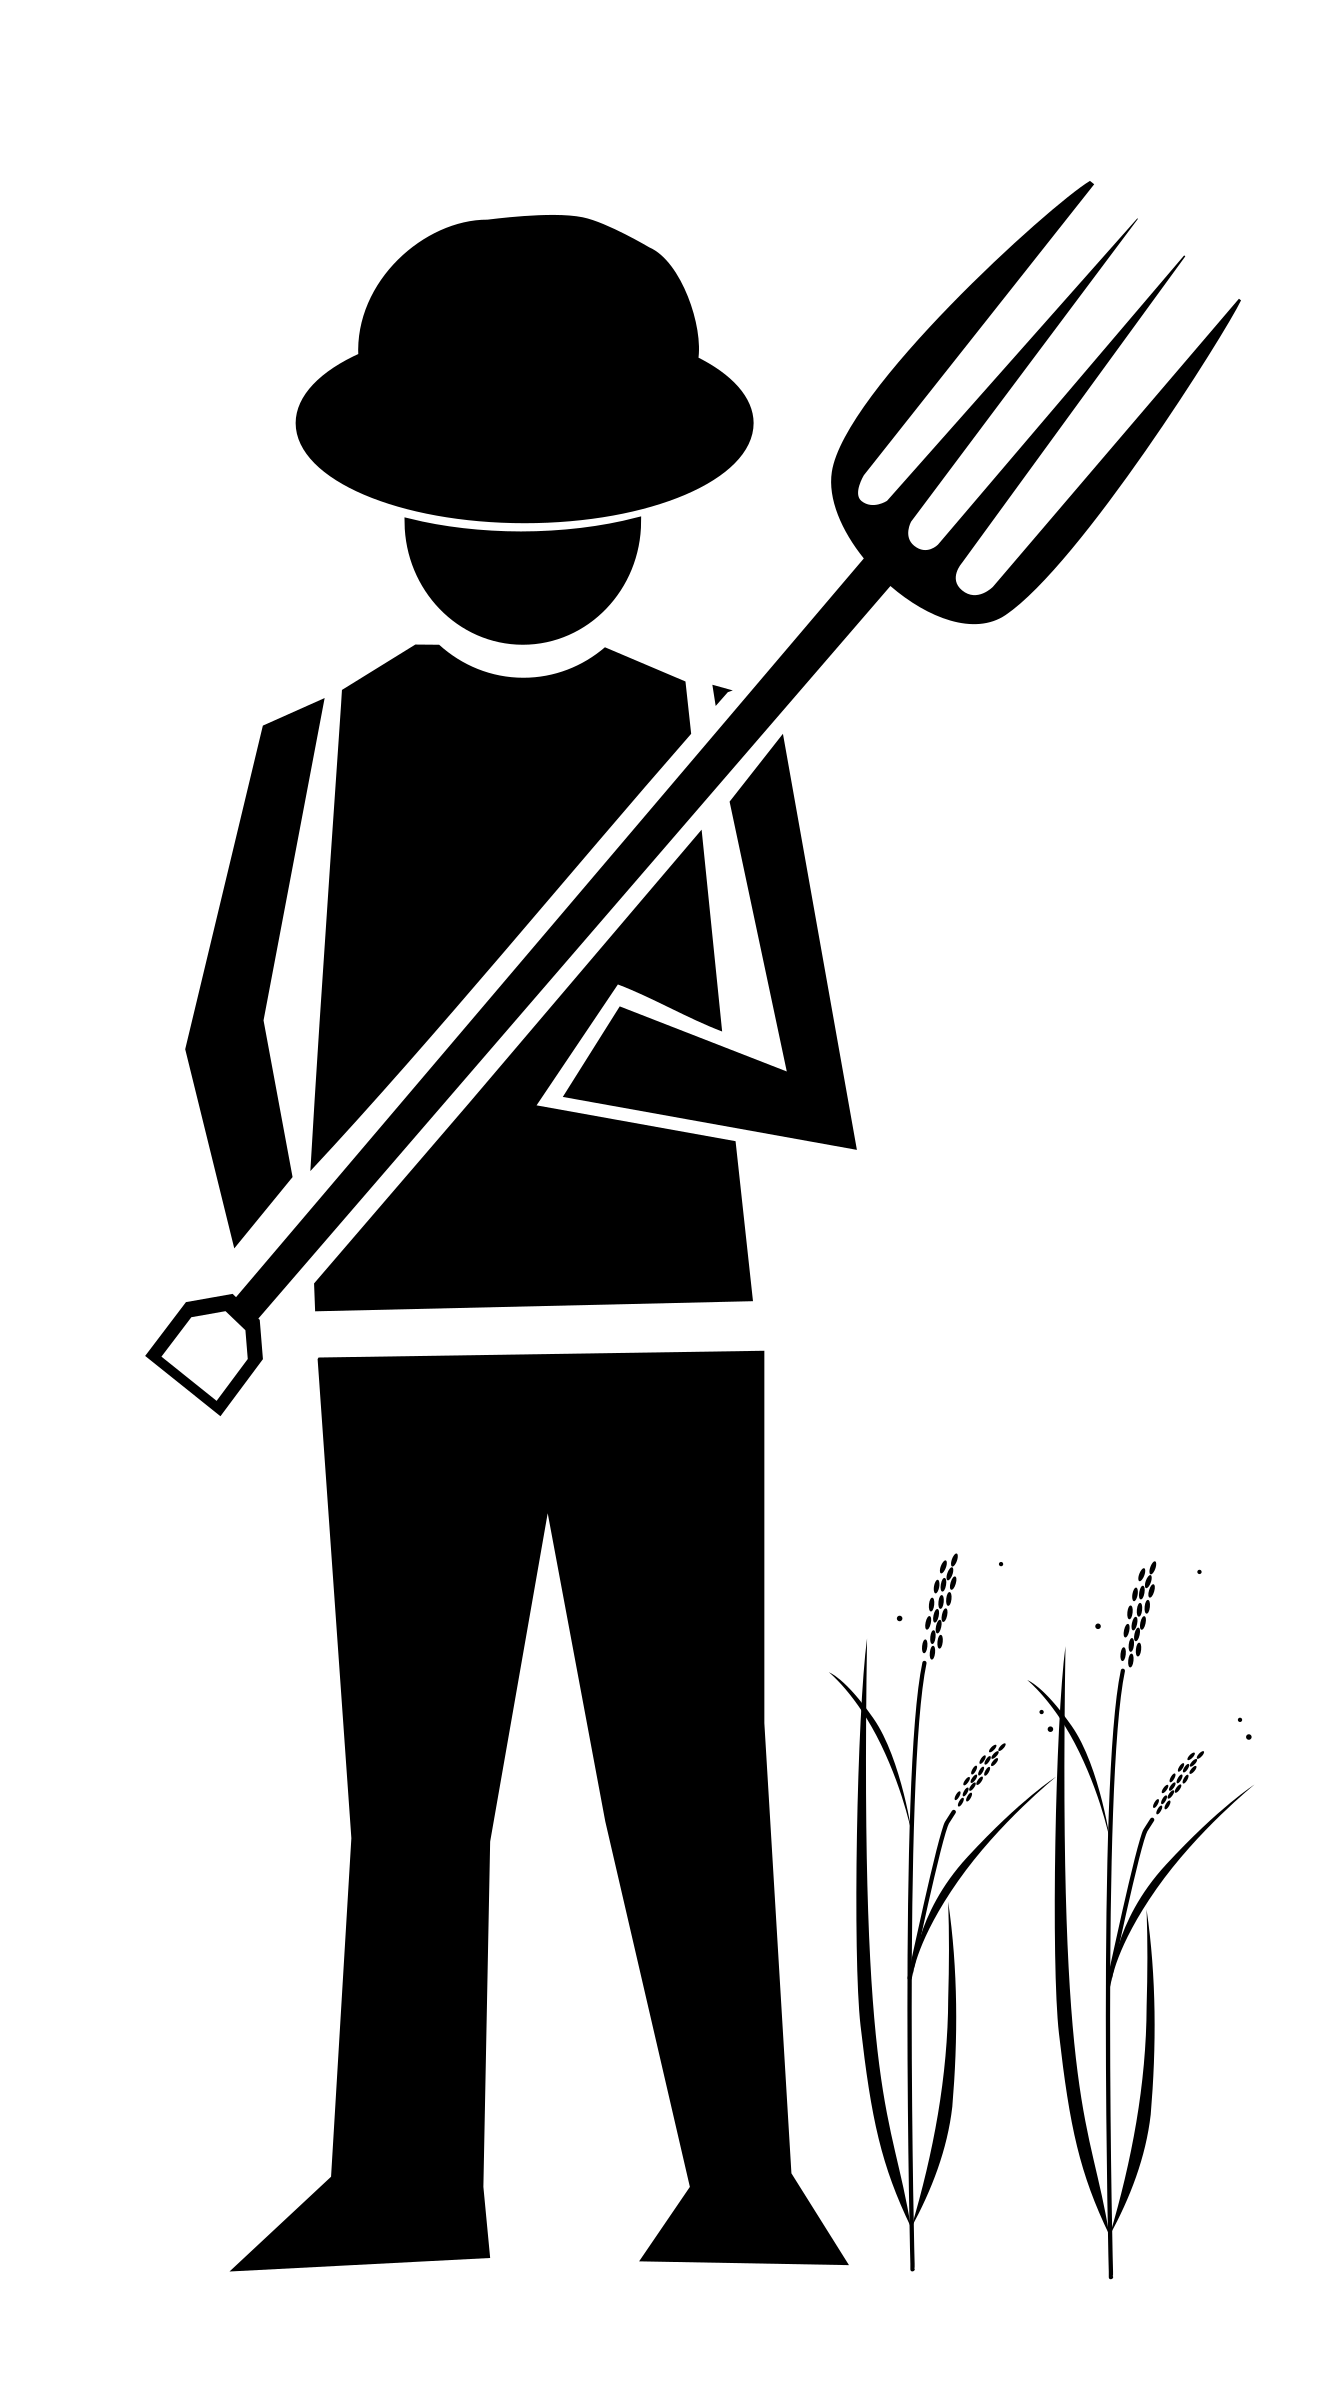 Farming Clipart Free Download On Webstockreview